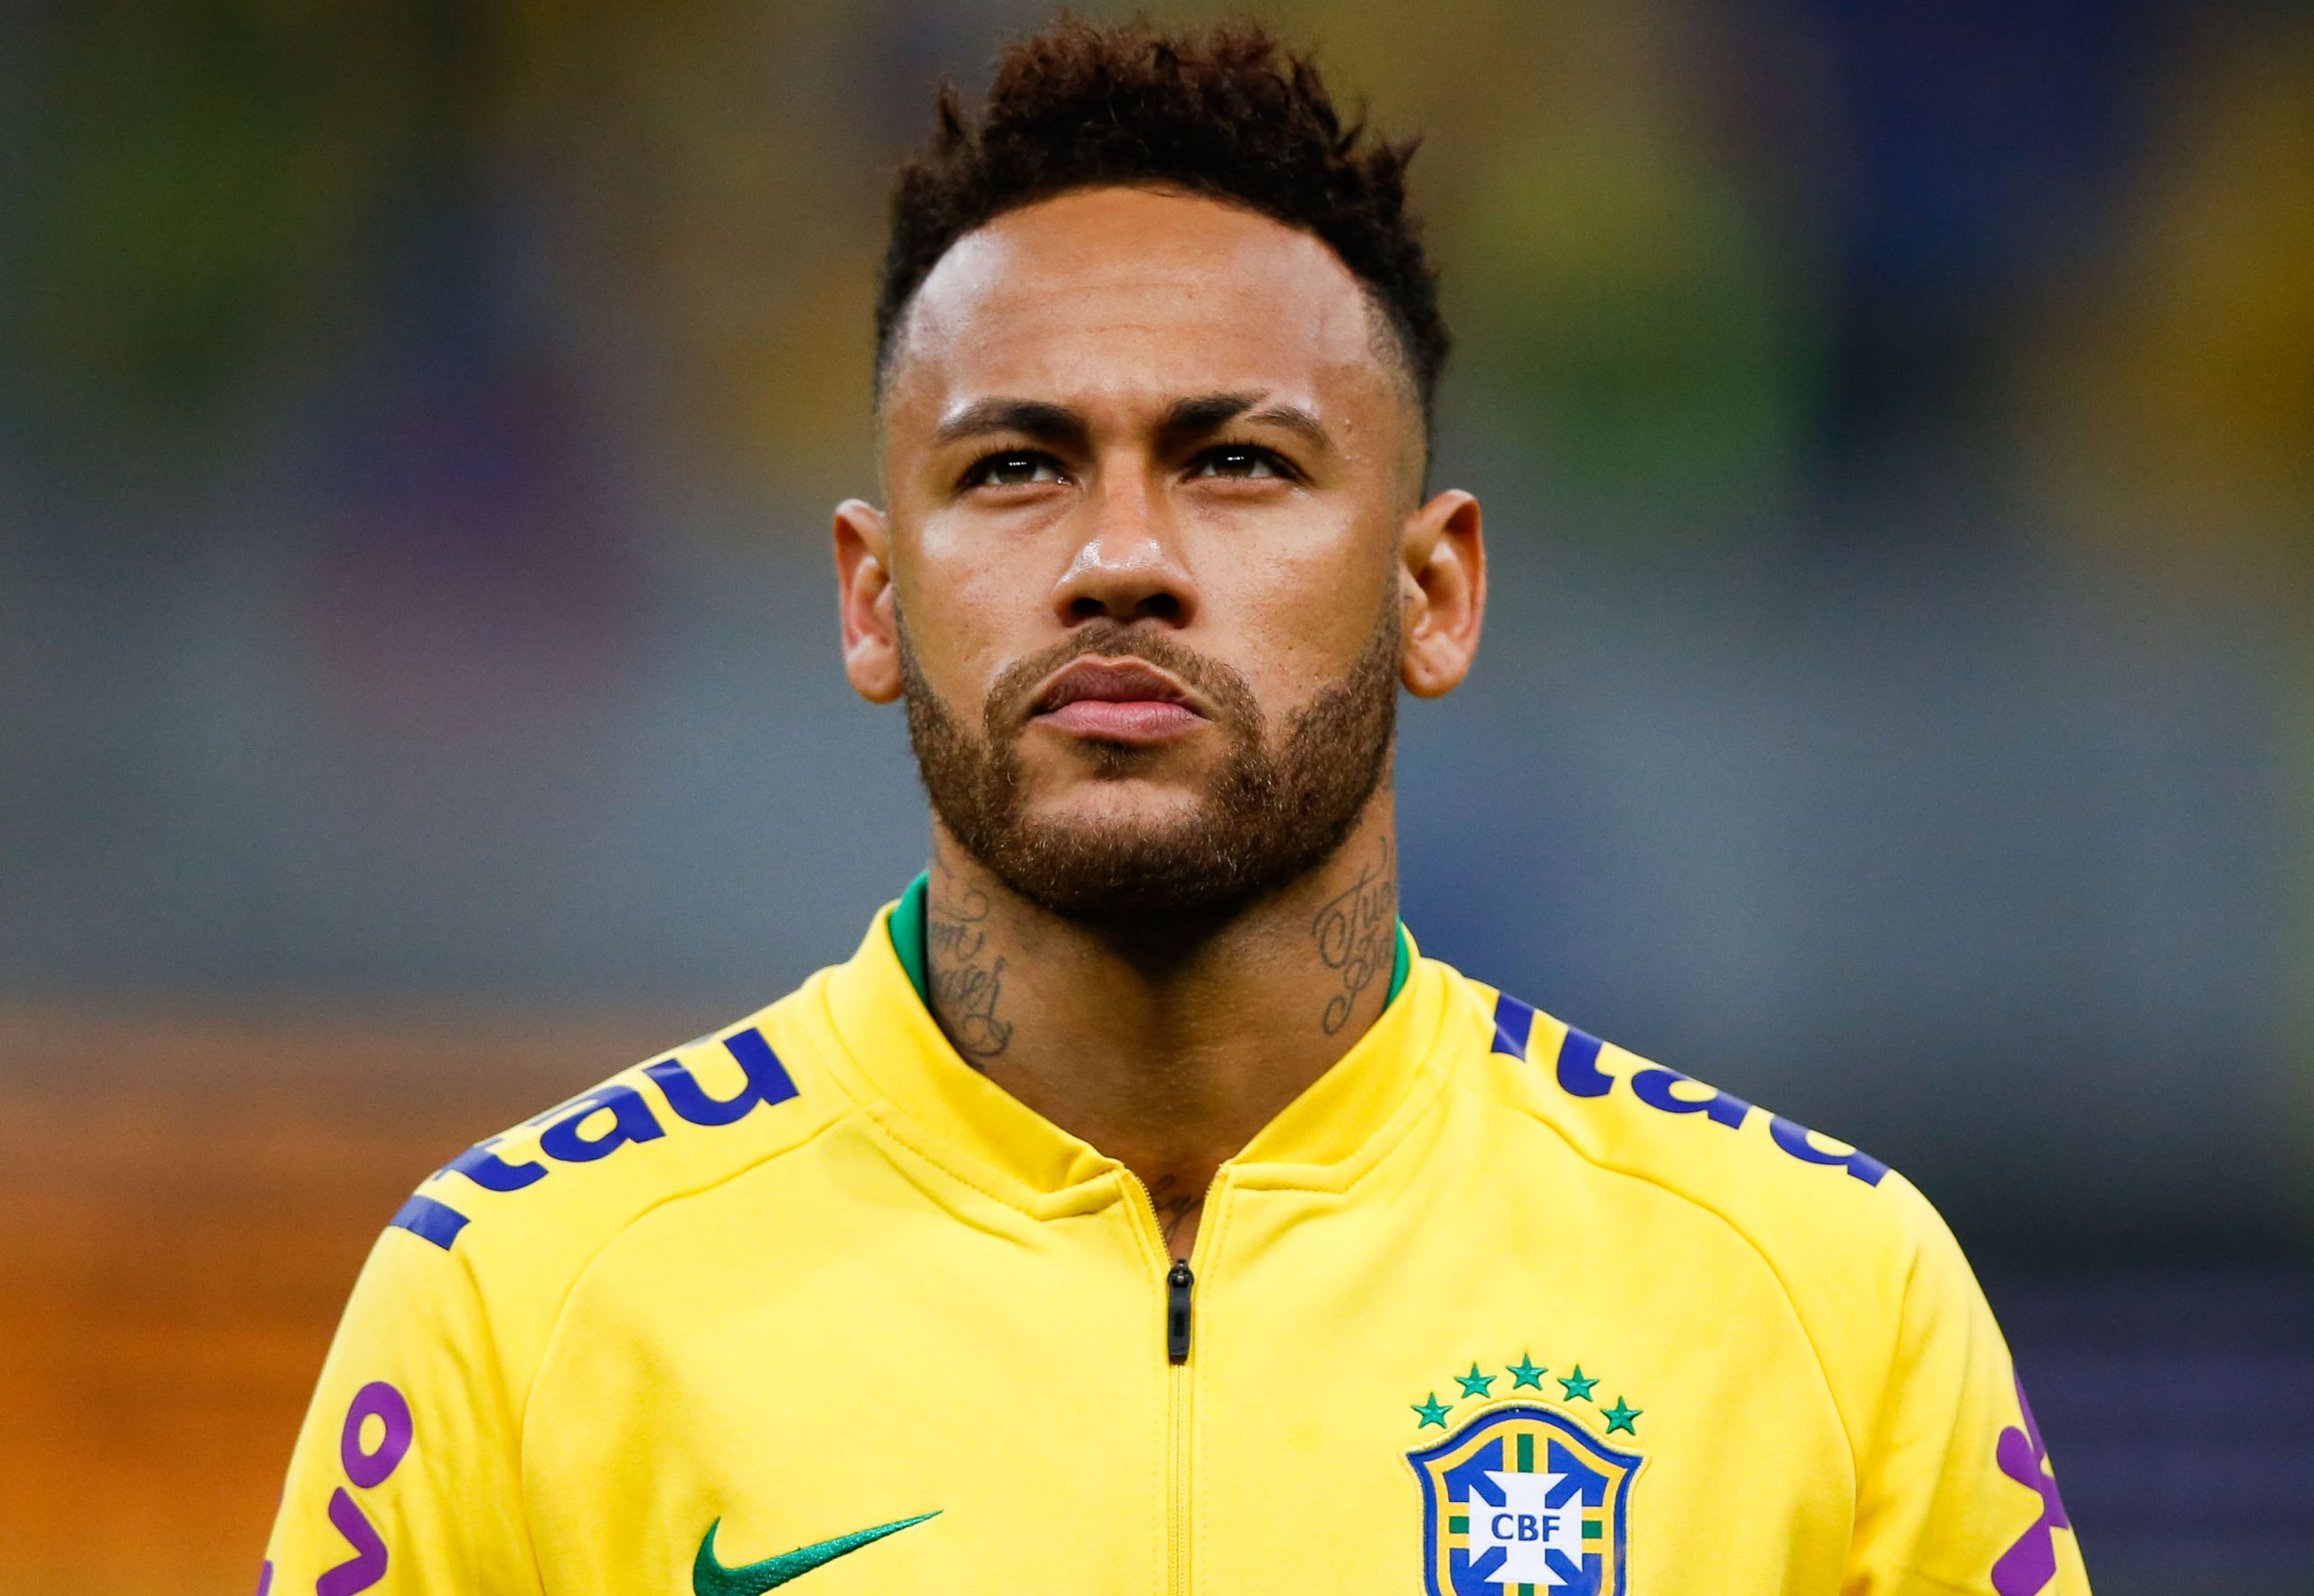 Neymar Believes 2022 World Cup in Qatar Will Be His Last